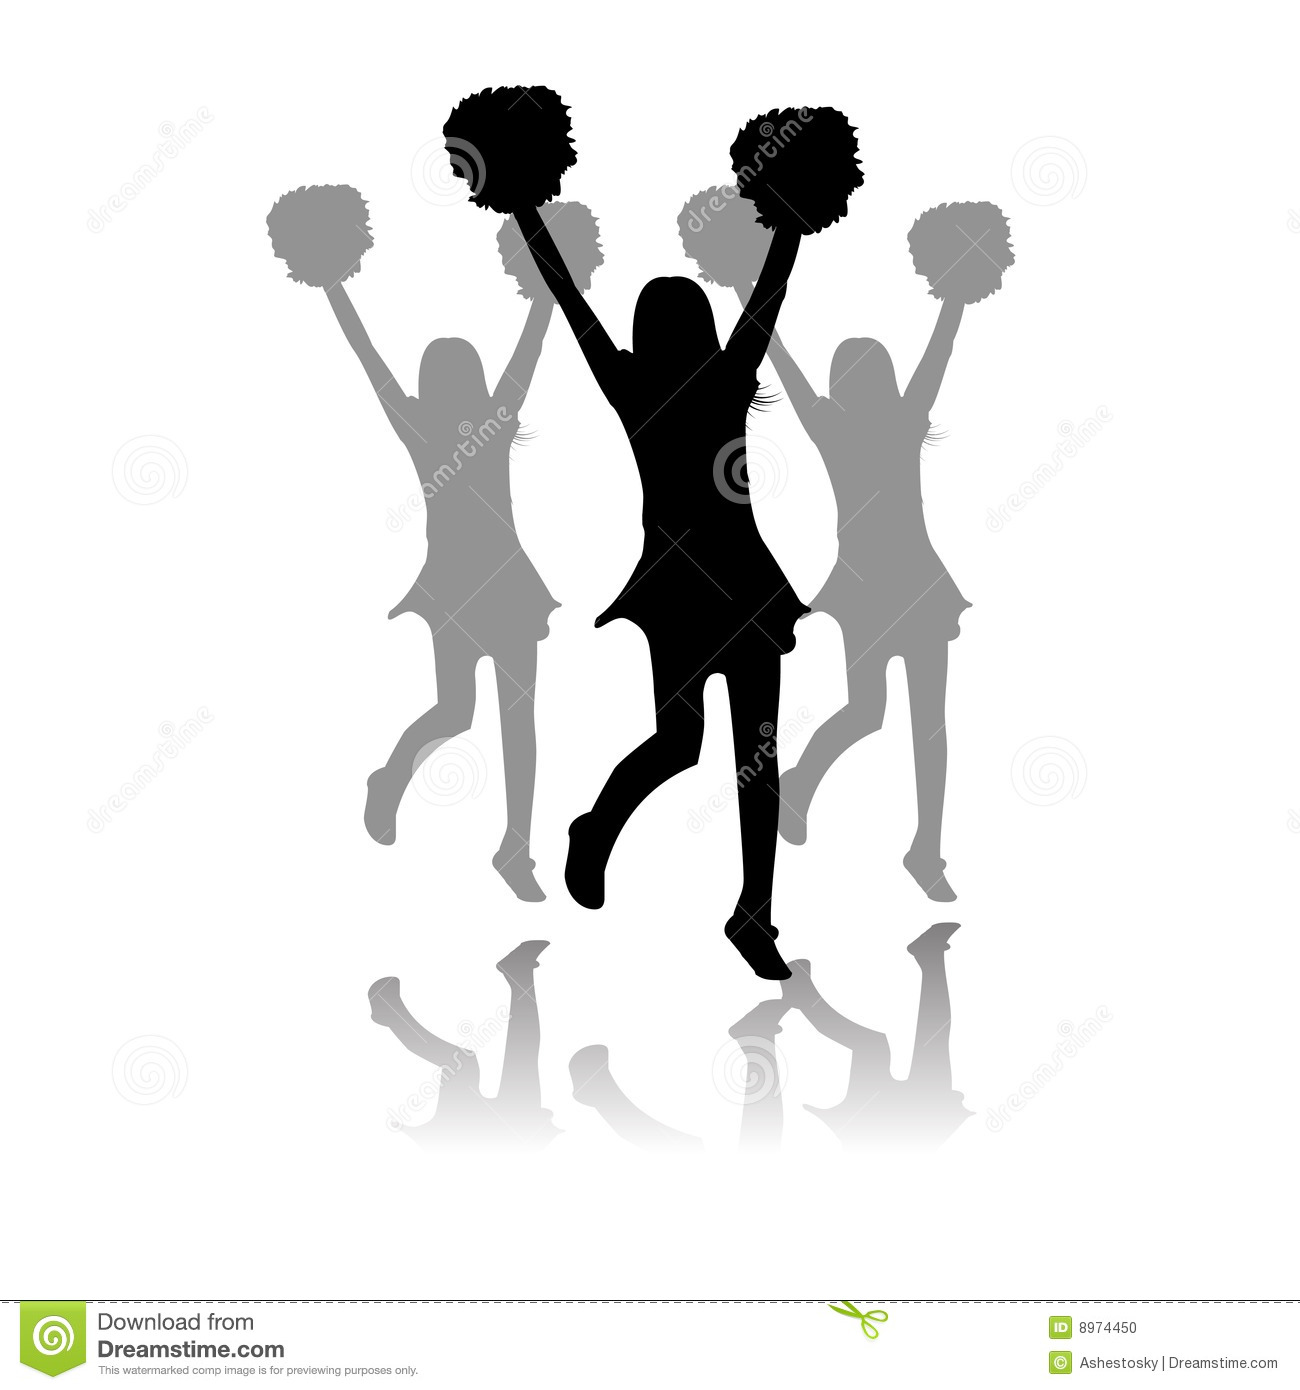 Displaying 20> Images For - Cheerleading Silhouette Clip Art...